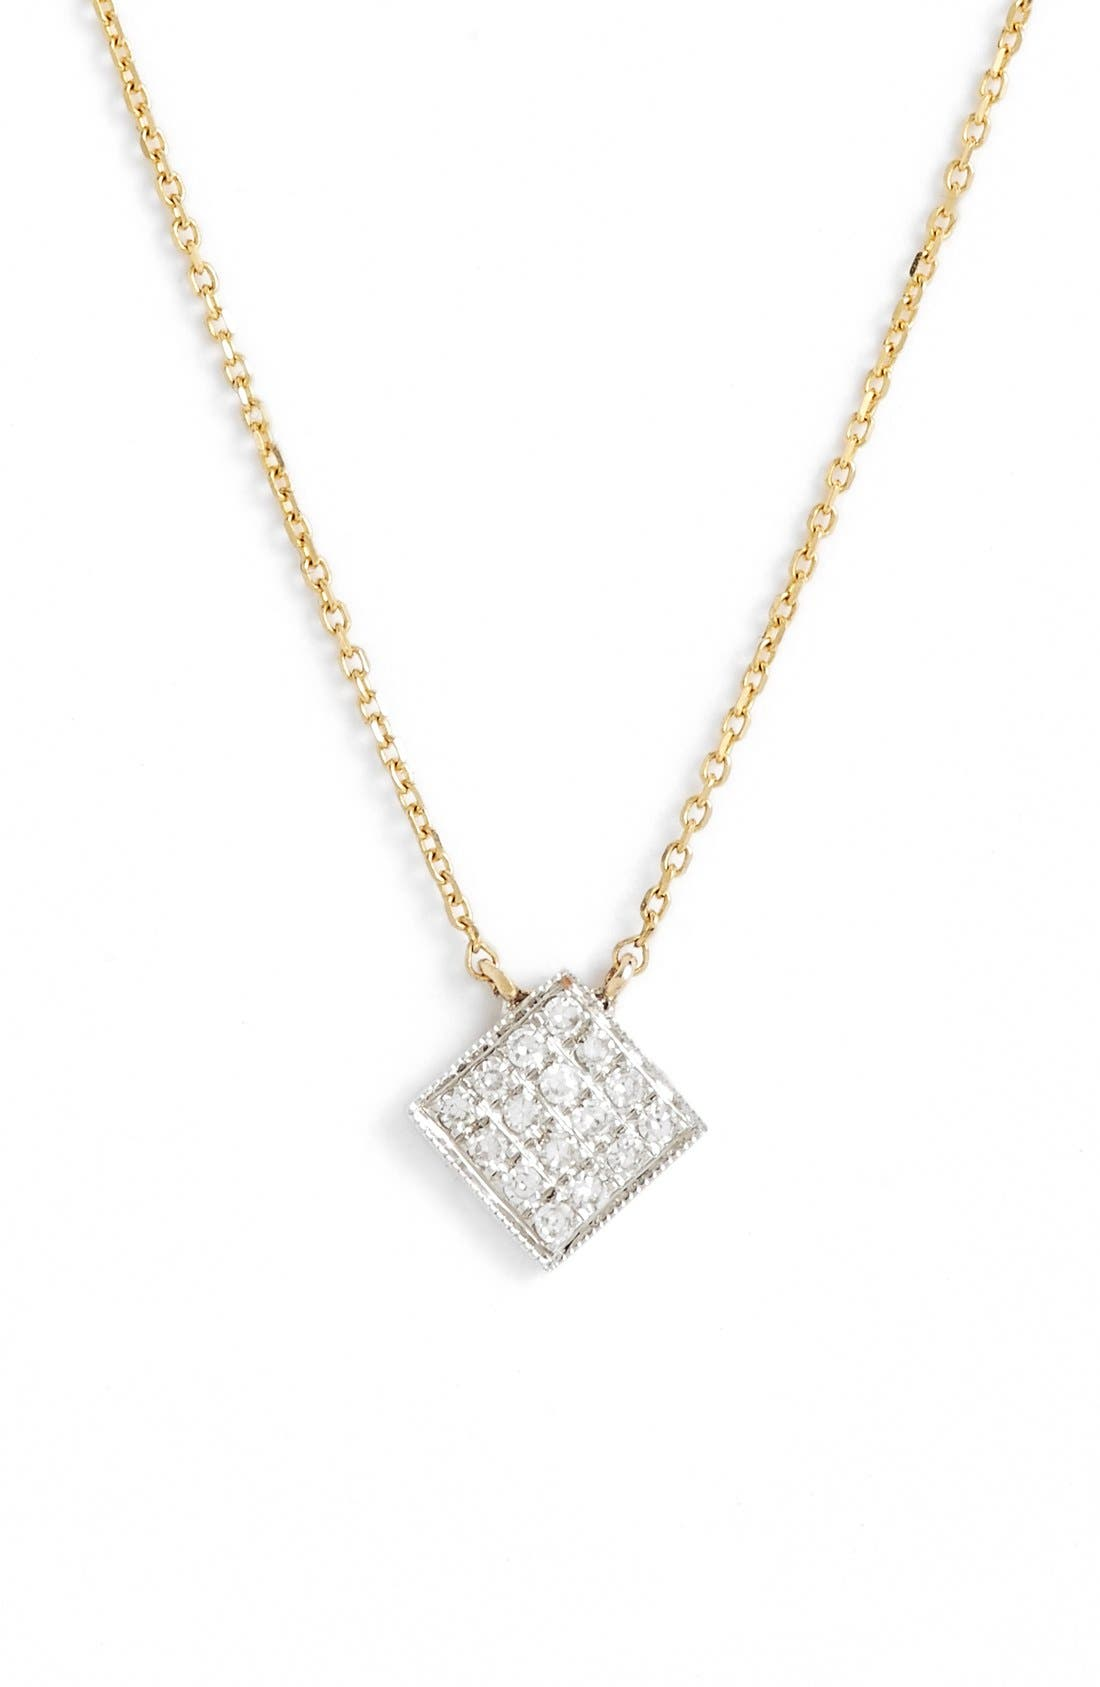 DANA REBECCA DESIGNS 'Lisa Michelle' Diamond Pavé Square